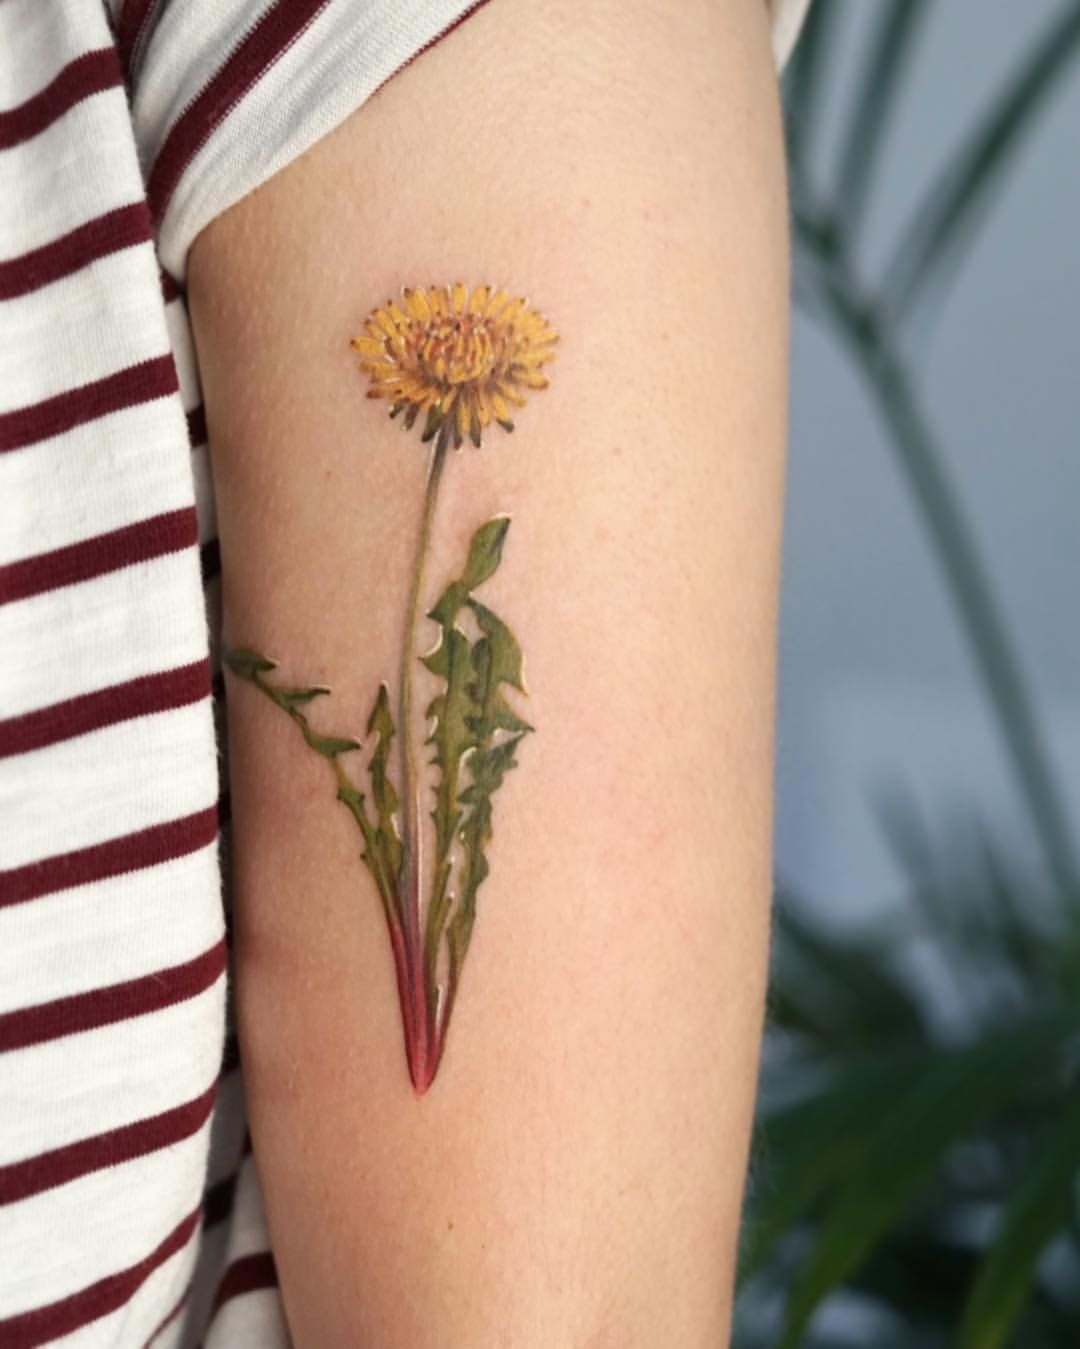 The Dandelion Flower A Gift To A Loved One That Will Provide You Happiness And A Promise Of Total Faithfulness Tha Dandelion Tattoo Tattoos Dandelion Flower